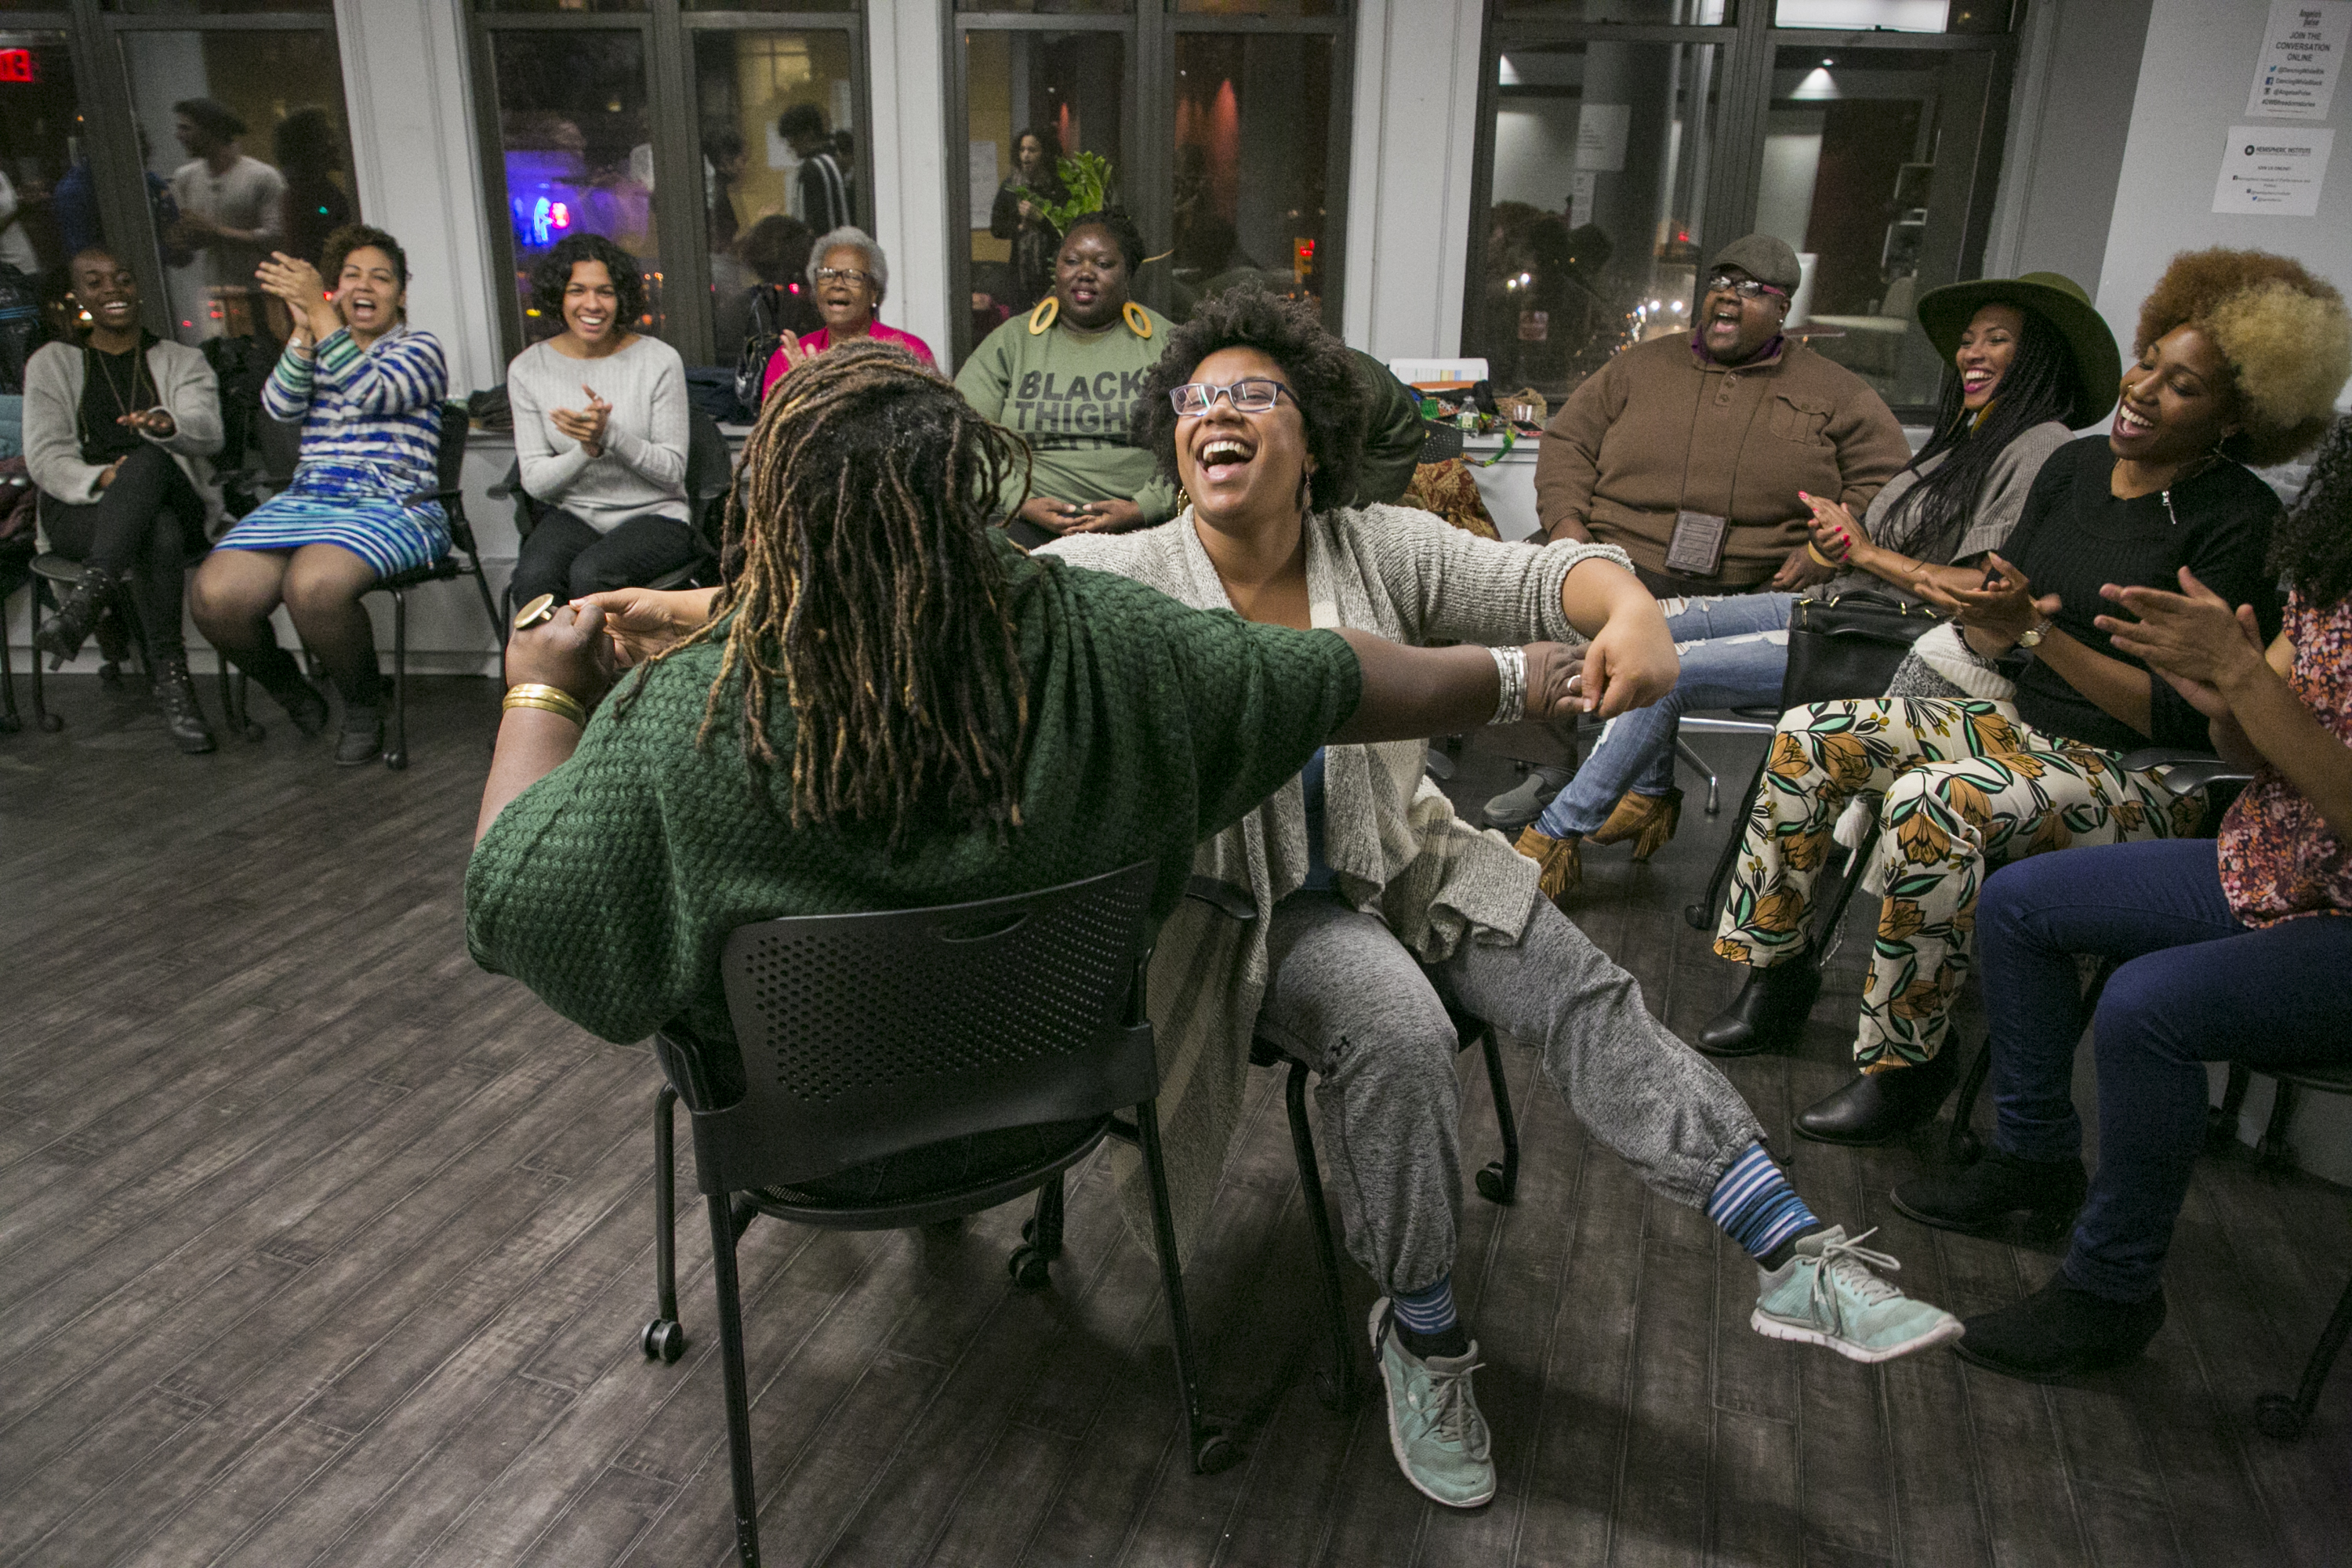 Ebony Noelle Golden and Sydnie L. Mosley ('15-'16 DWB Fellow) share a moment of pure joy surrounded by a circle of Dancing While Black community members at Dancing While Black: This Body Knows Freedom - Story Circles on Organizing toward Vision in an Age of Resistance at NYU's Hemispheric Institute in November 2017.